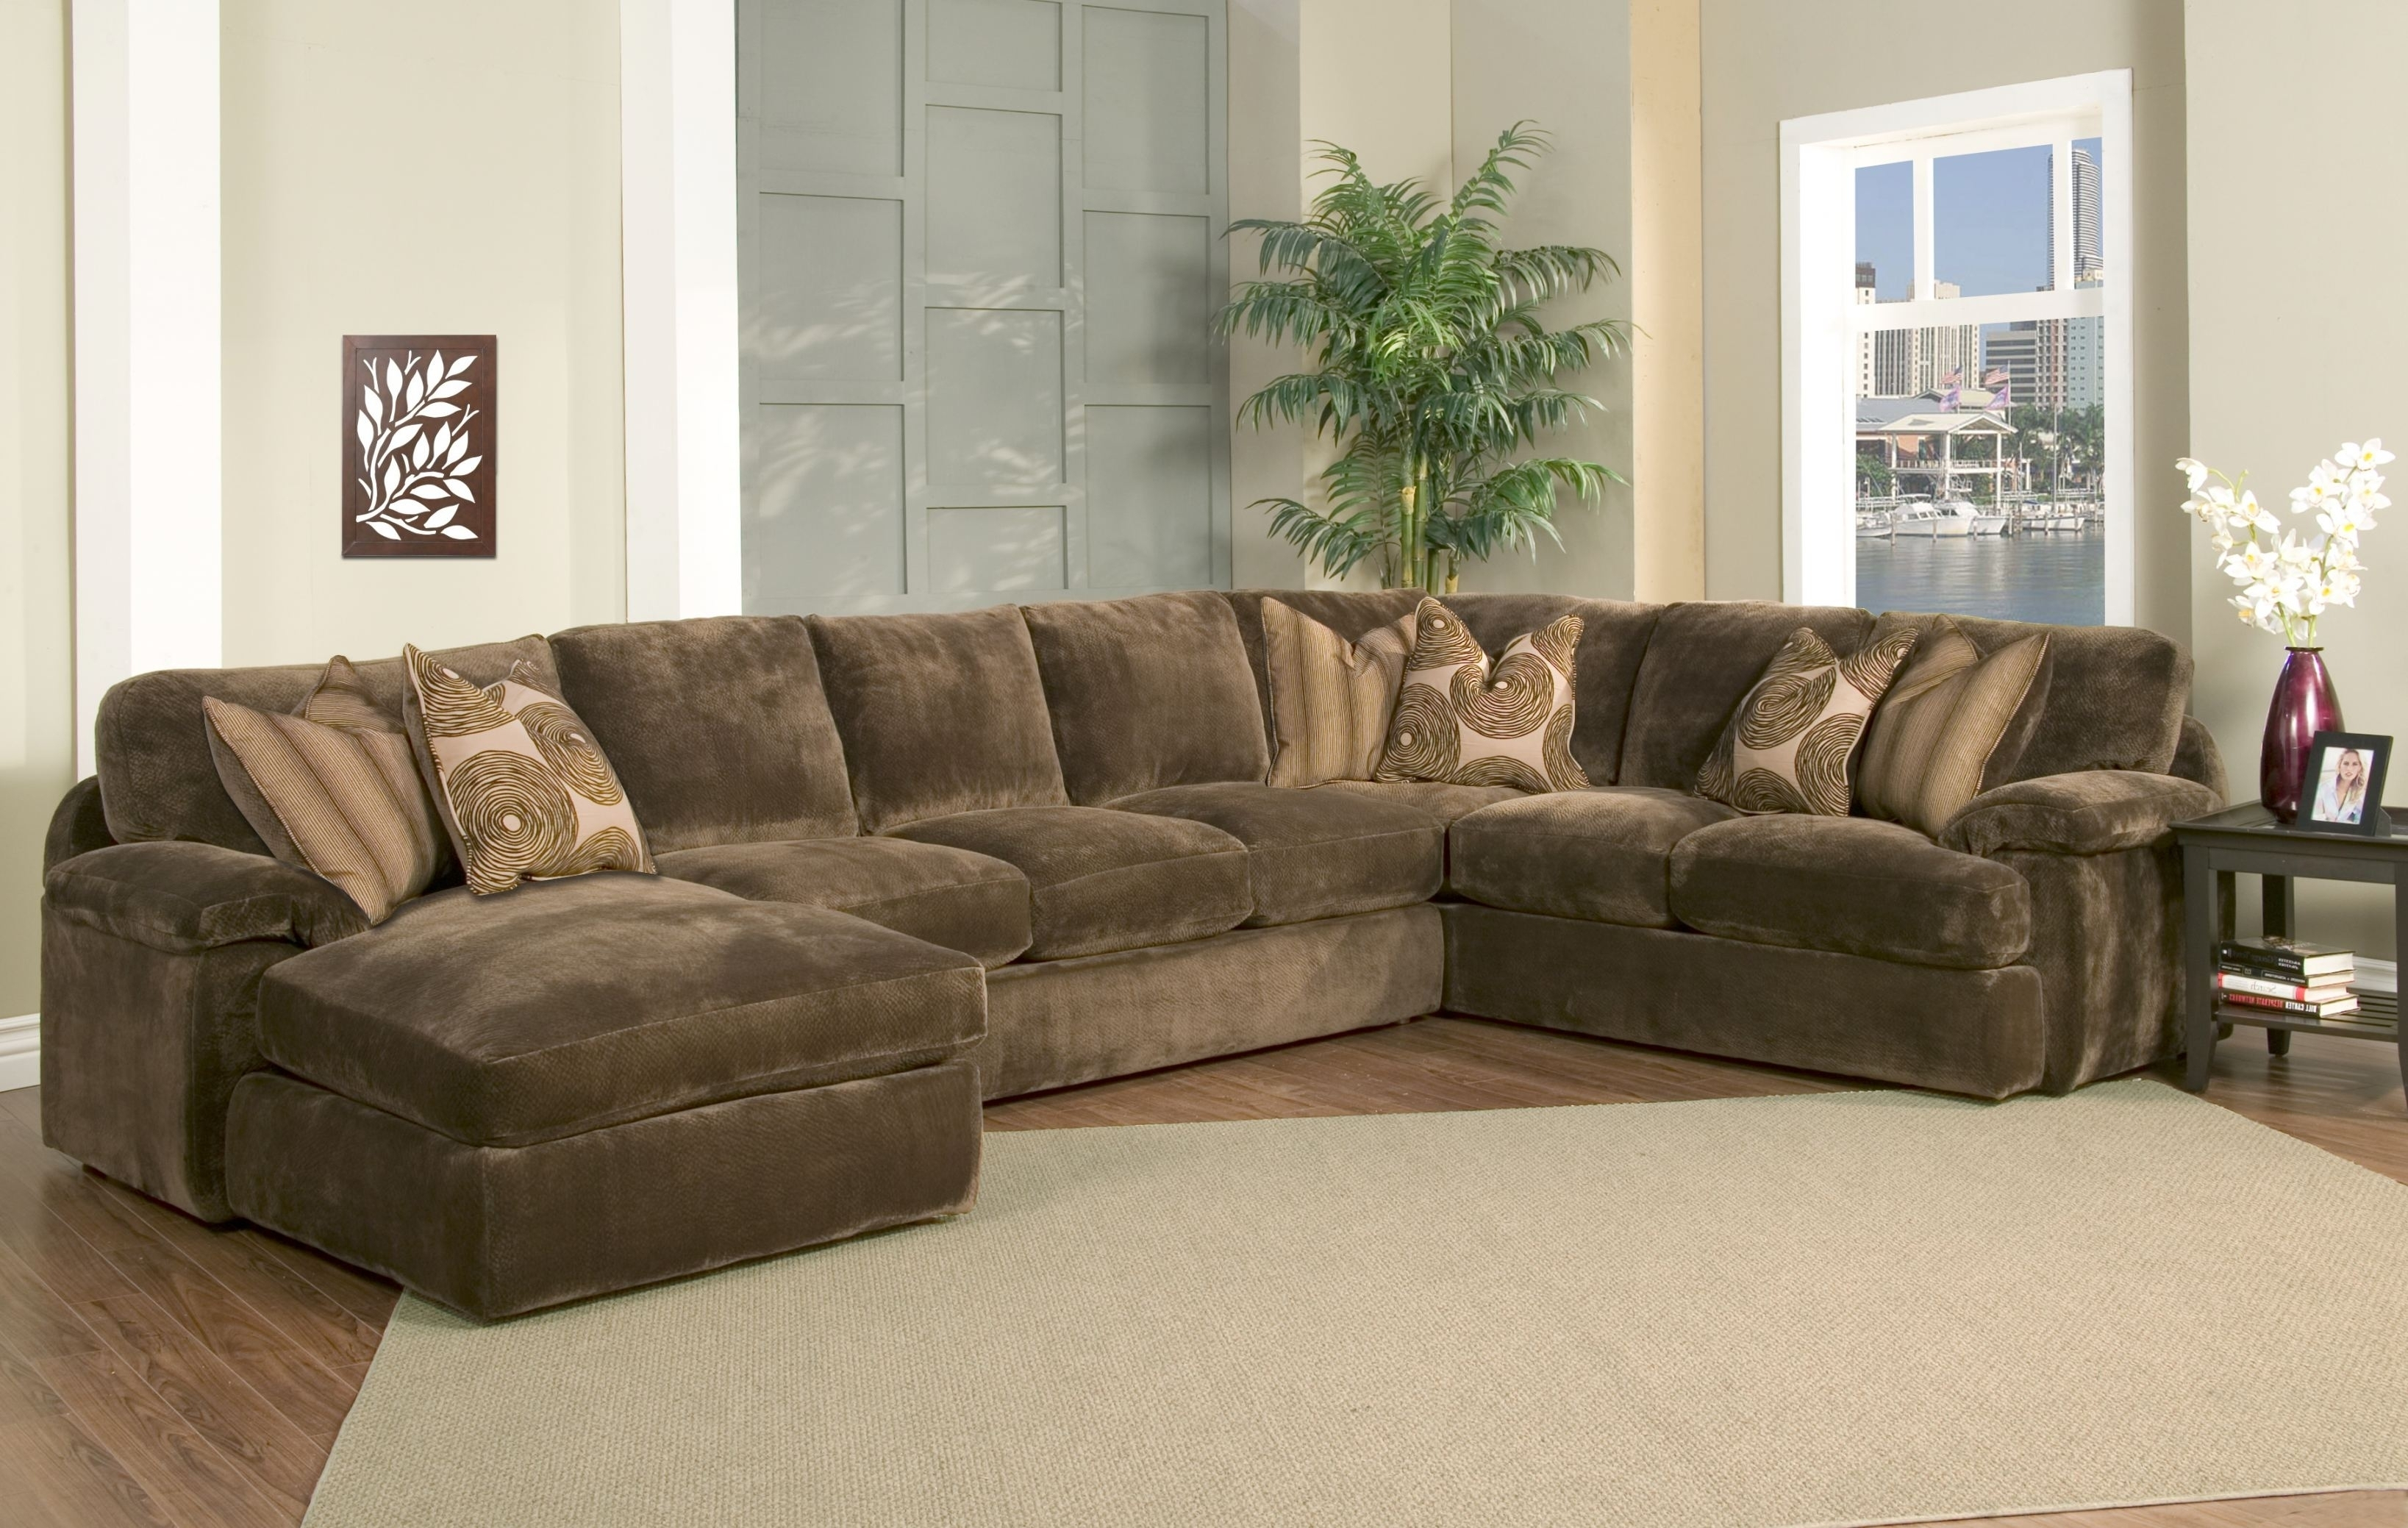 Down Filled Couches Leather Sofa Where To Buy Best Sectional Throughout Harper Foam 3 Piece Sectionals With Raf Chaise (Image 4 of 25)